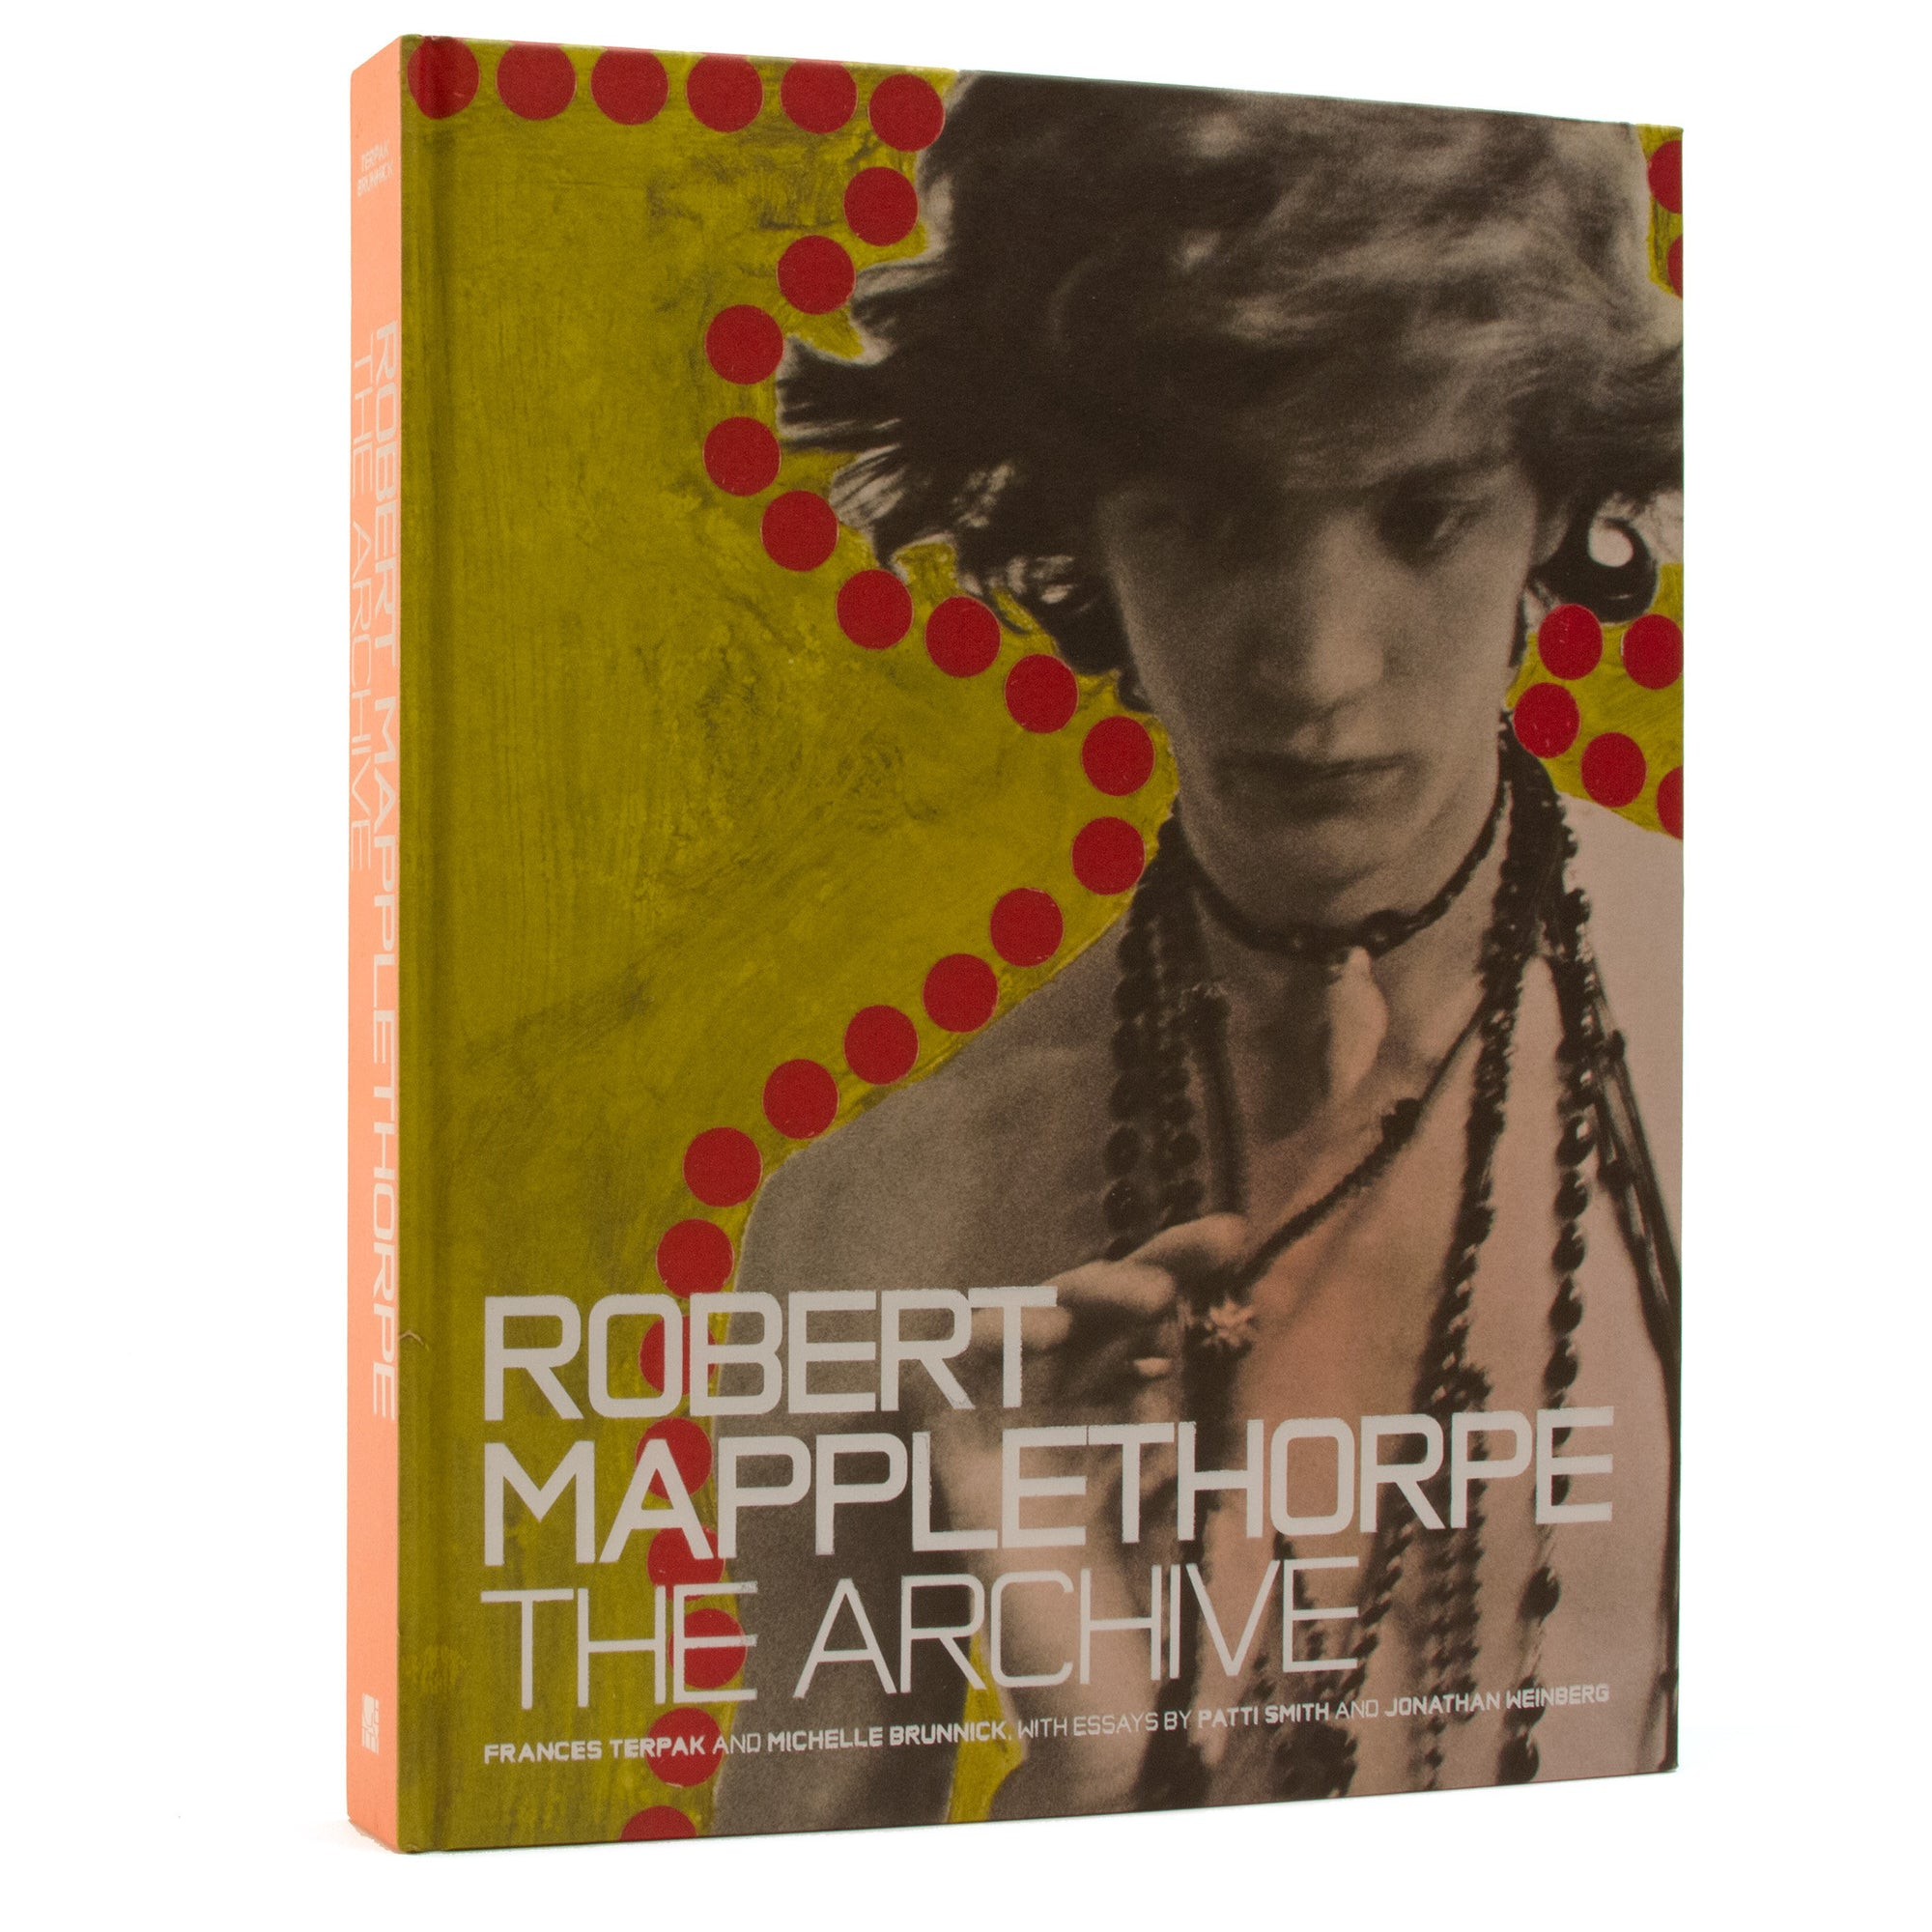 Robert Mapplethorpe: The Archive | Getty Store